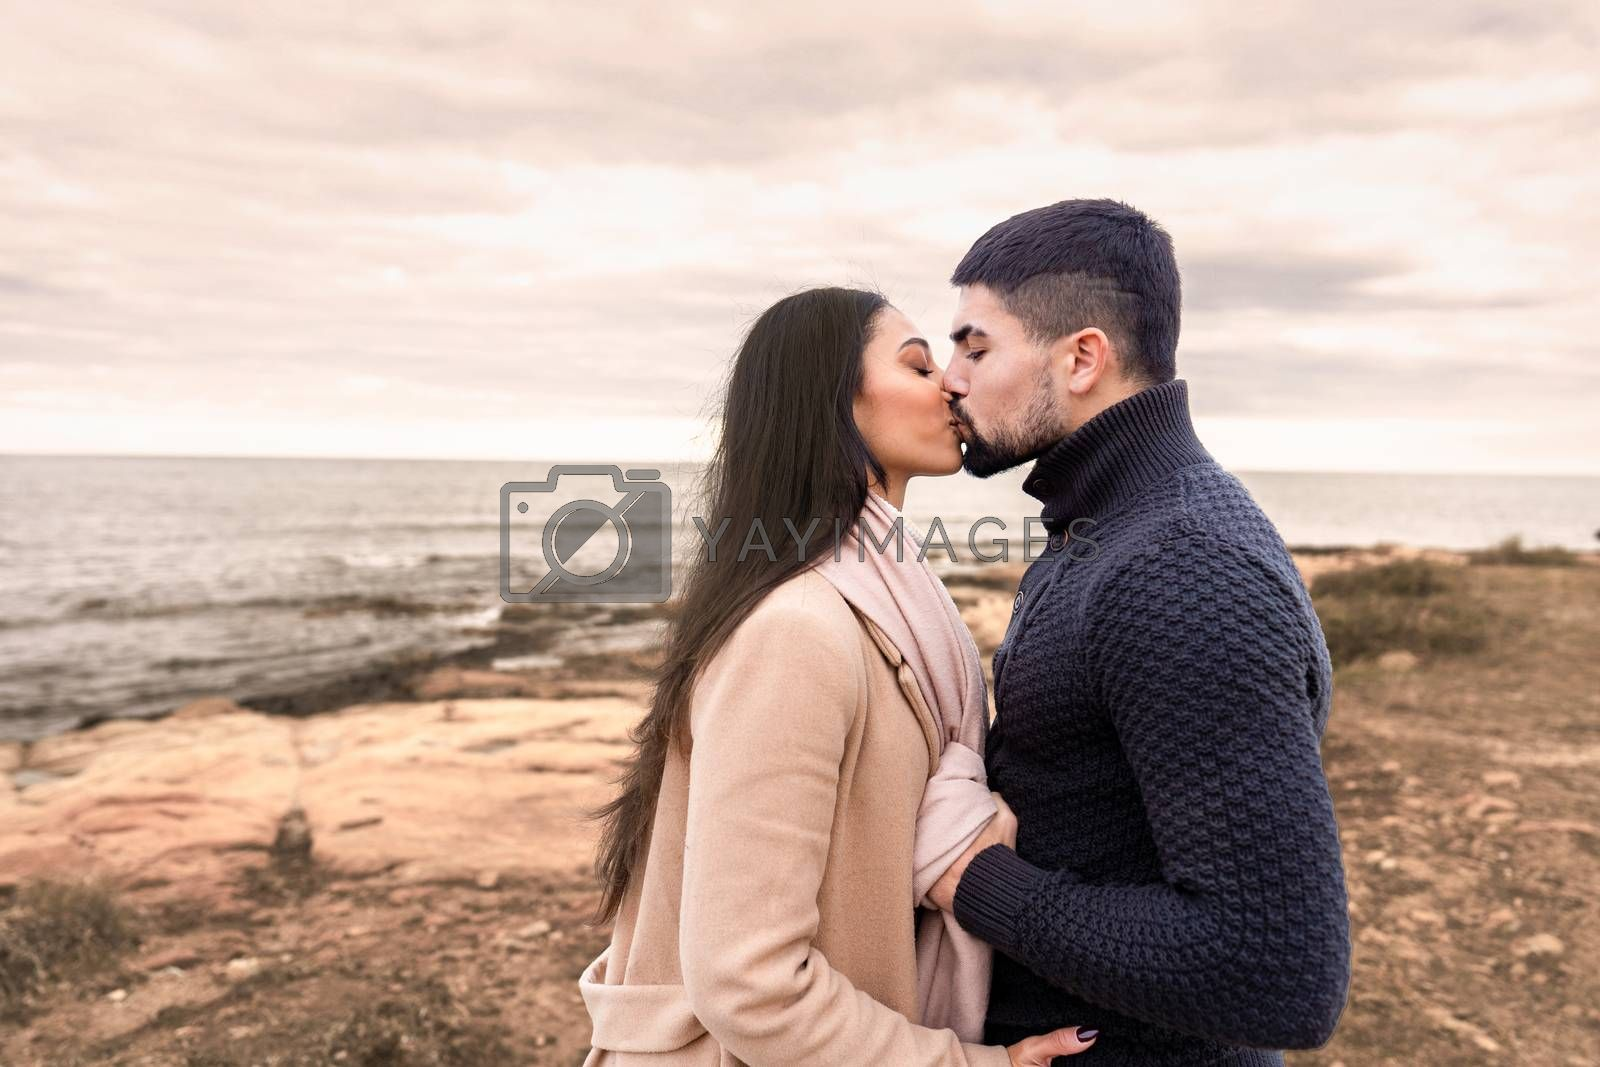 Mixed race couple romance scene on sea rocks and cloudy sky at sunset or dawn - Handsome bearded guy kisses his beautiful black Hispanic long hair woman holding her by the scarf with autumn colors